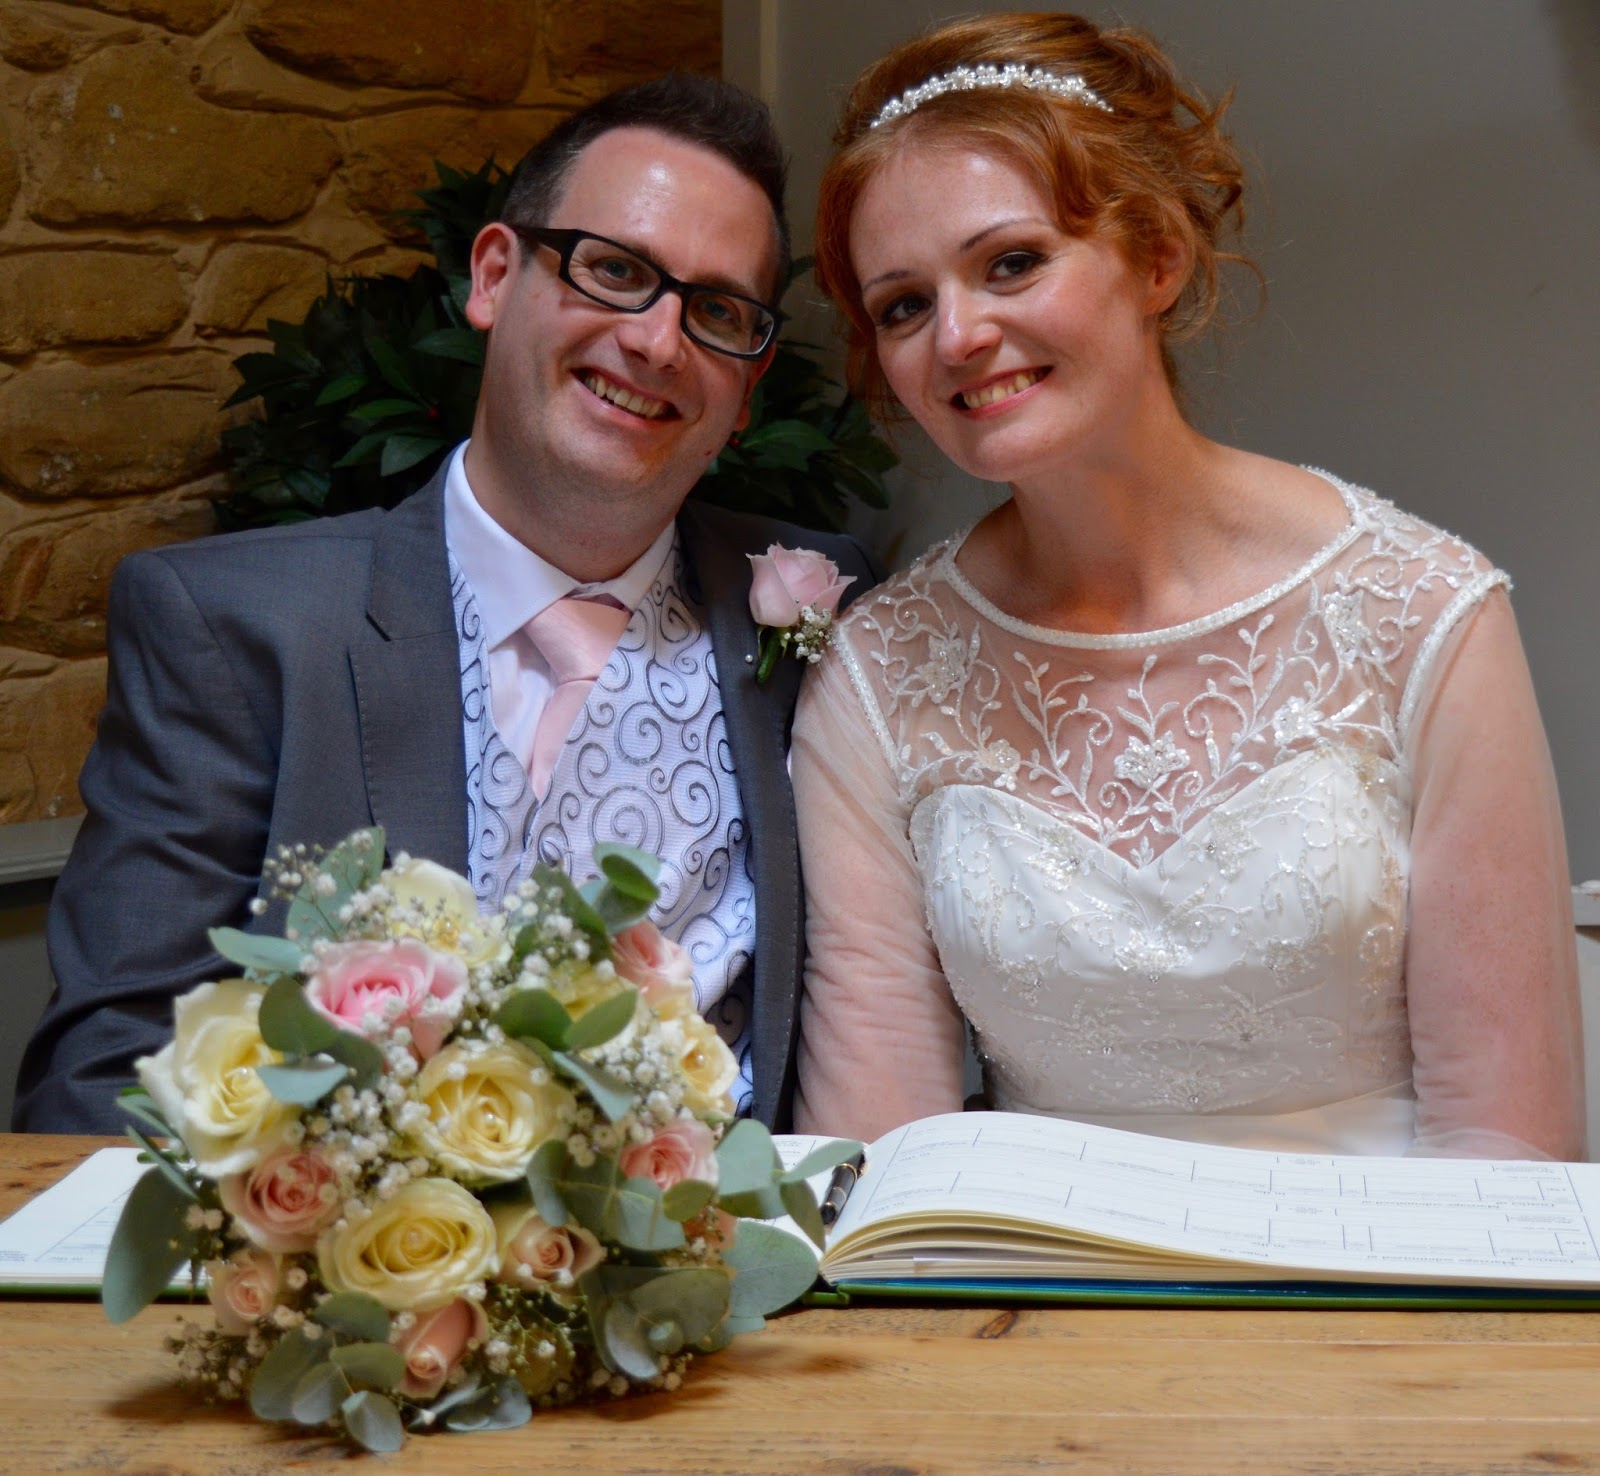 Weddings at The Parlour at Blagdon in Northumberland - wedding ceremony in the tearoom